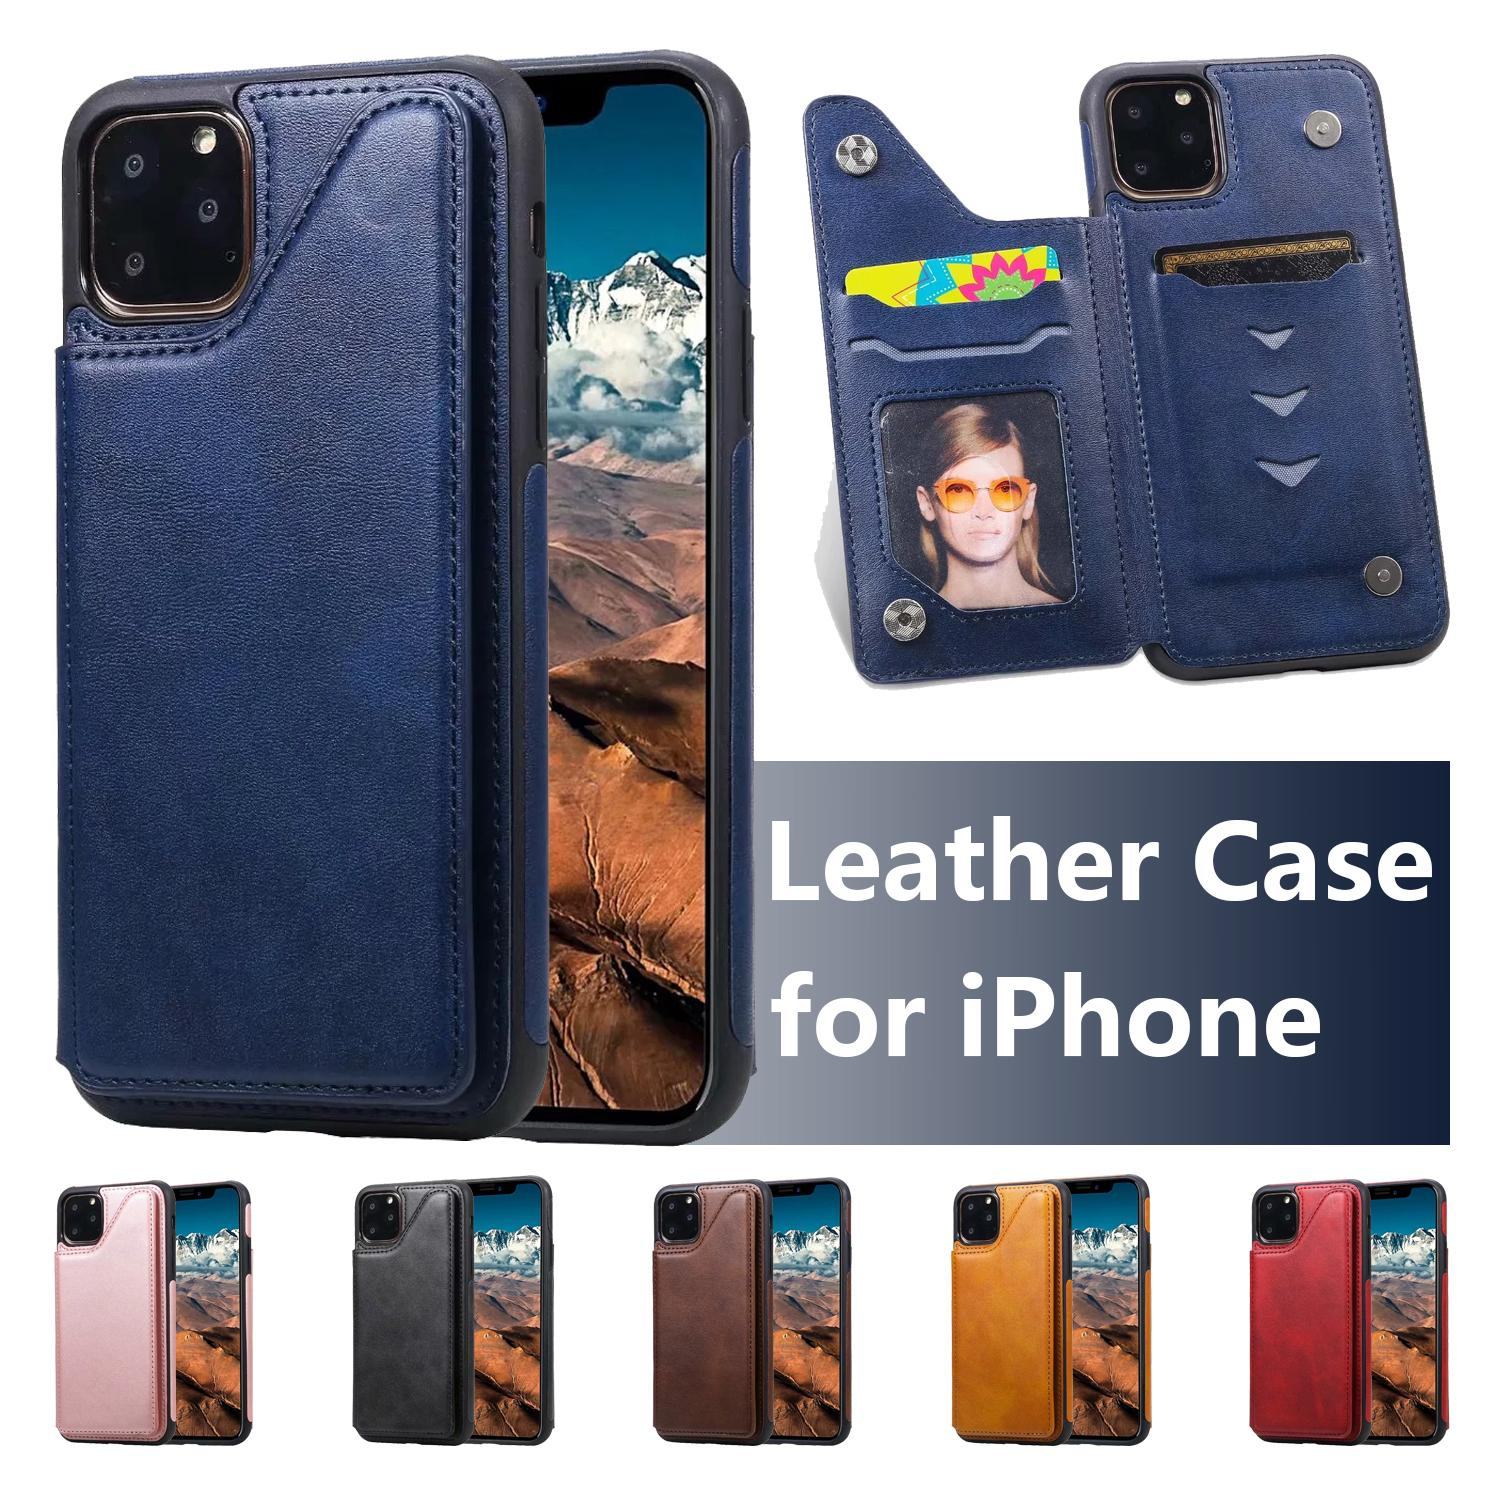 PU Leather Phone Case for iPhone 11 Pro X XR XS Max 6 7 8 Plus Samsung Galaxy S20 Ultra Solid Color Calfskin Texture Bracket Shockproof Case